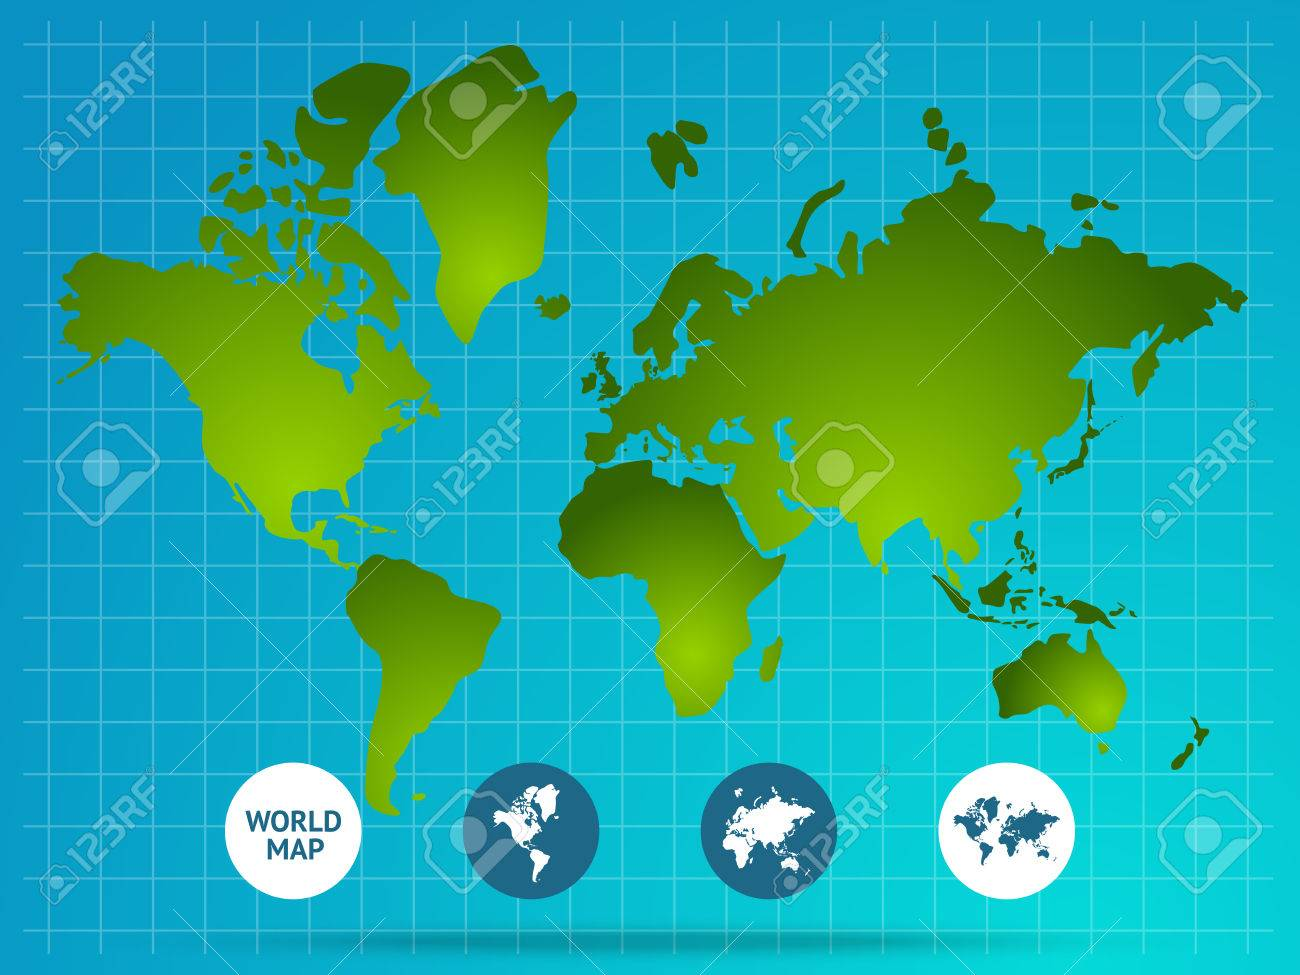 World map page of website with green continents grid buttons vector world map page of website with green continents grid buttons at bottom on blue background vector illustration gumiabroncs Image collections